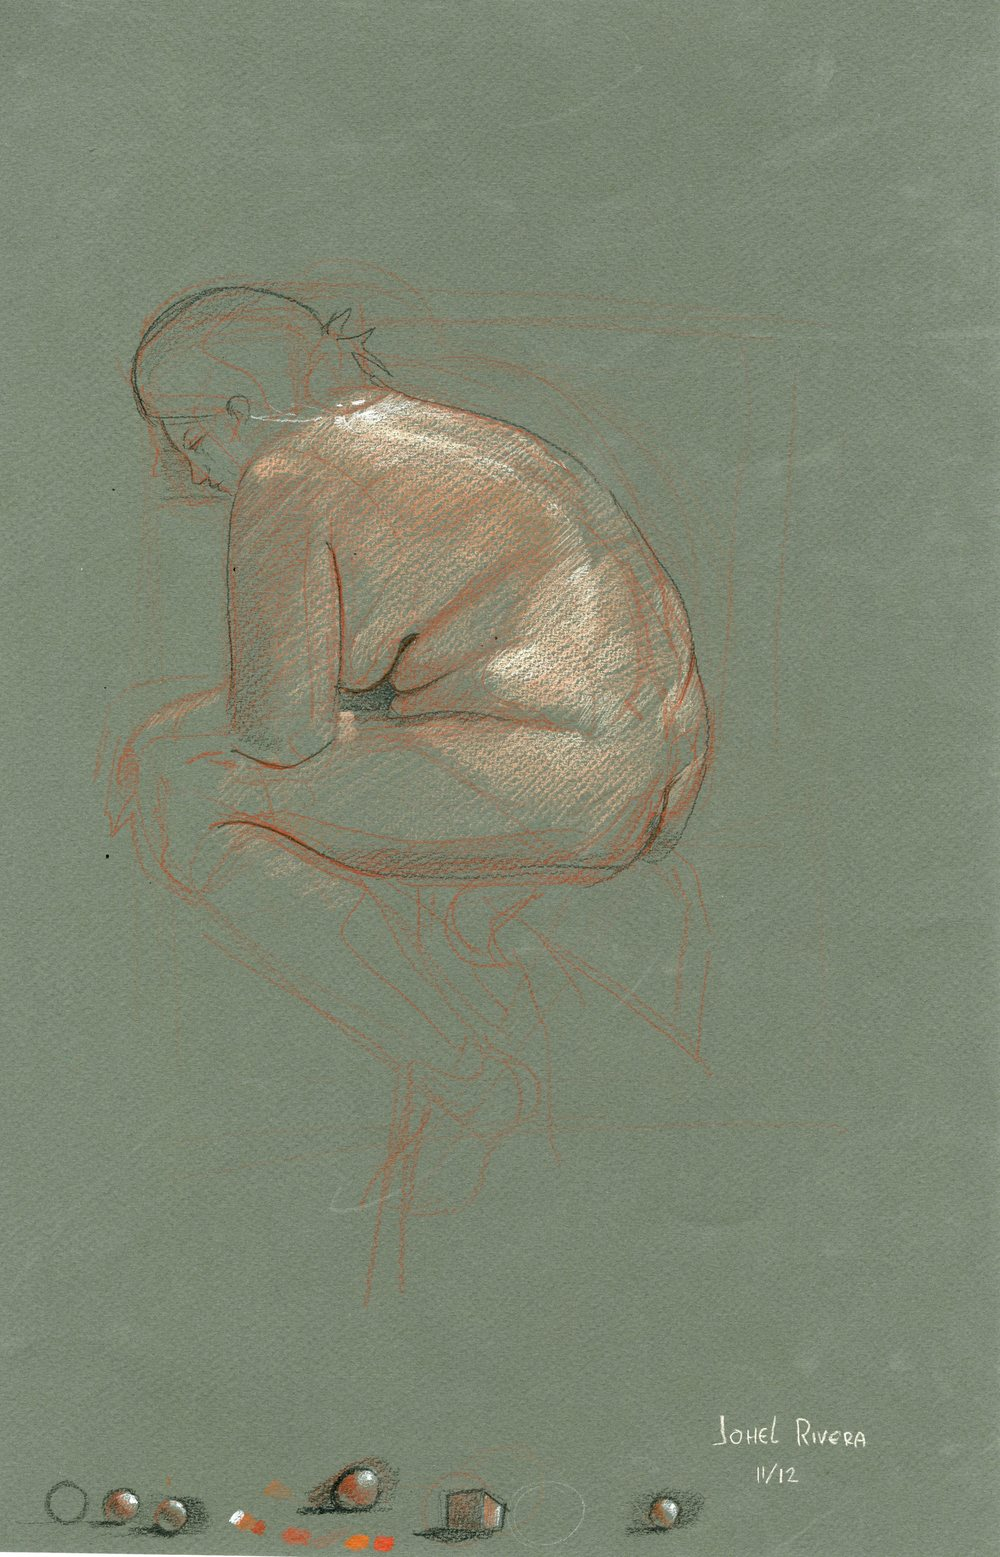 lifeDrawing_006.jpg